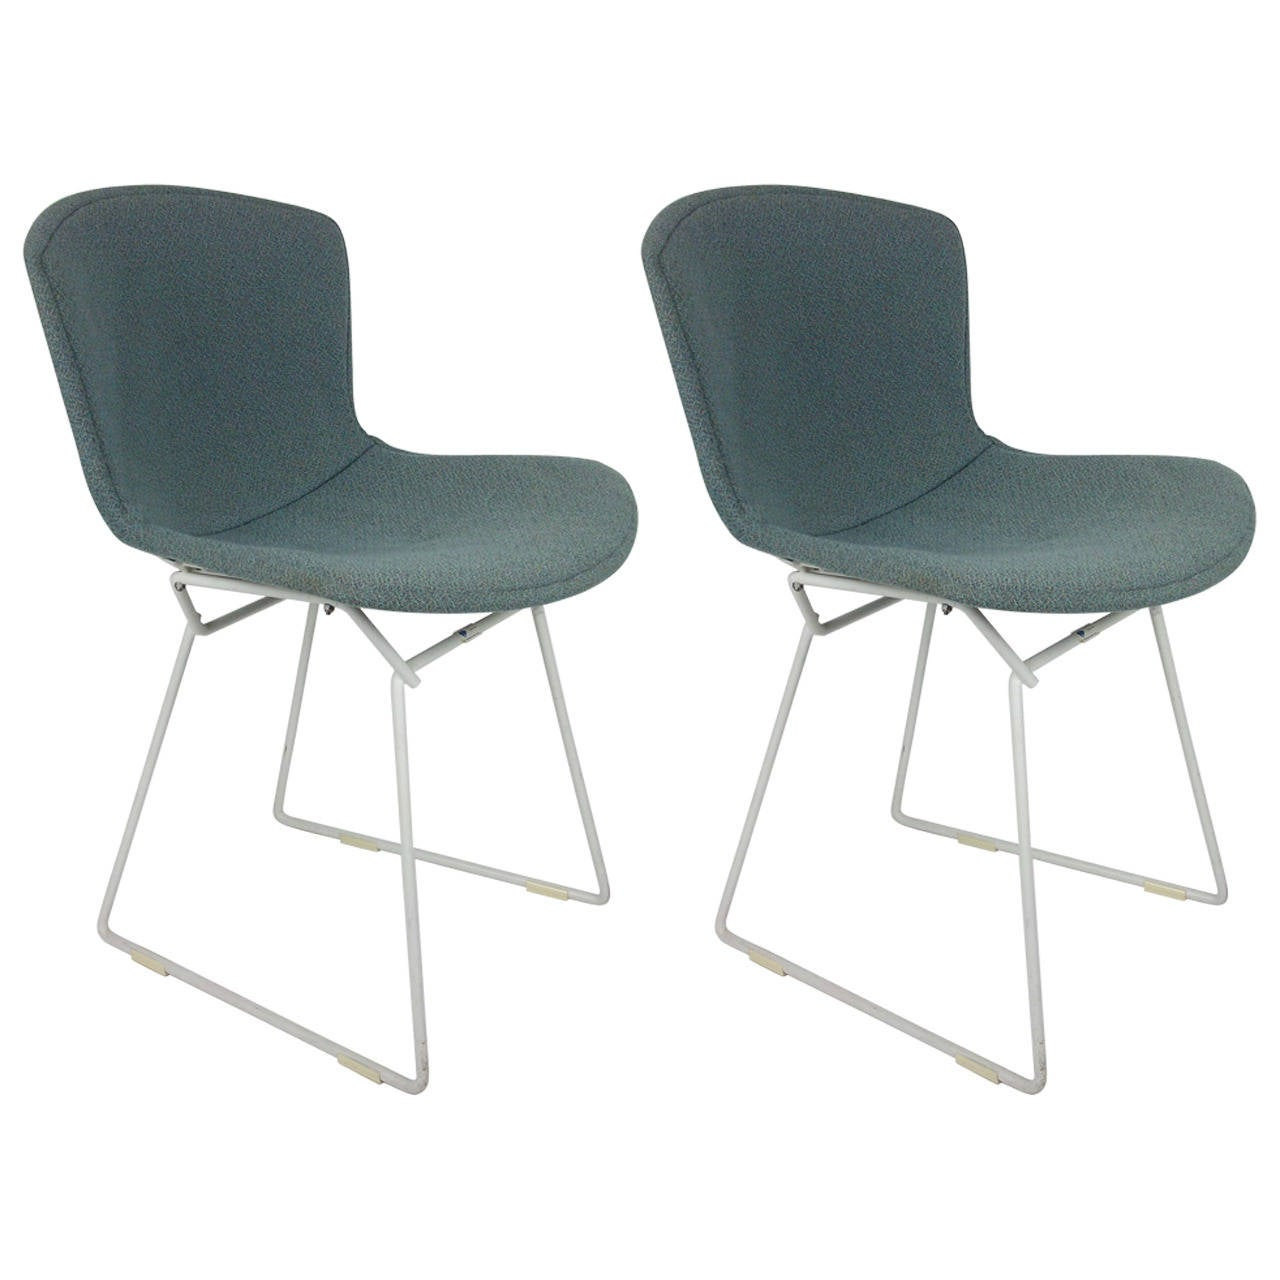 Pair of Original Vintage Harry Bertoia Wire Chairs for